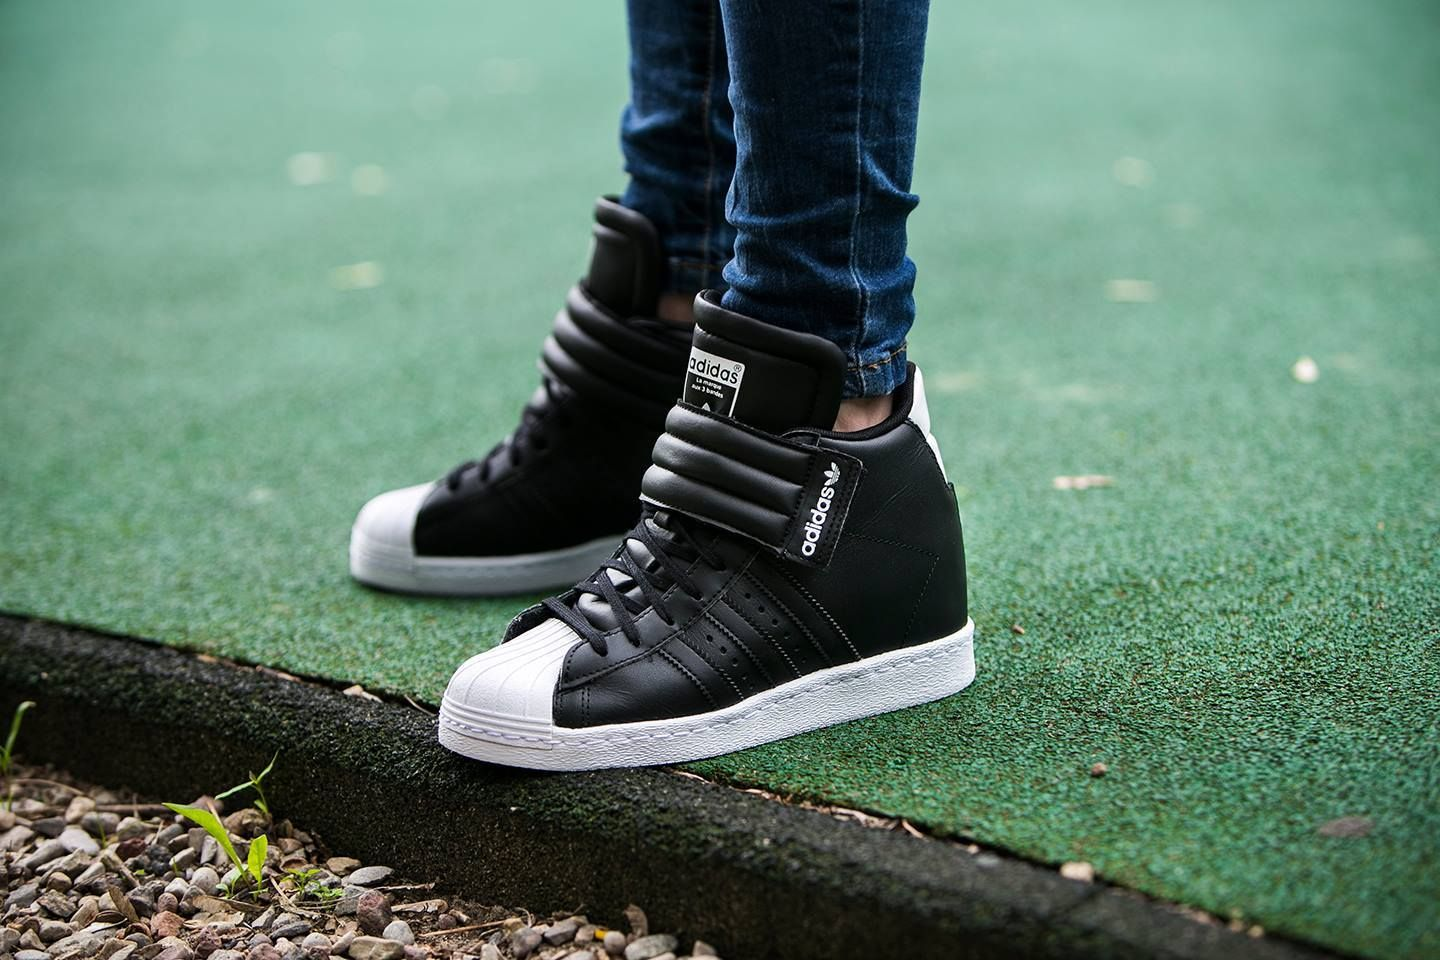 new style 77ba8 15cf6 ADIDAS SUPERSTAR UP STRAP PLATFORM WEDGES SHOES | ADIDAS ...